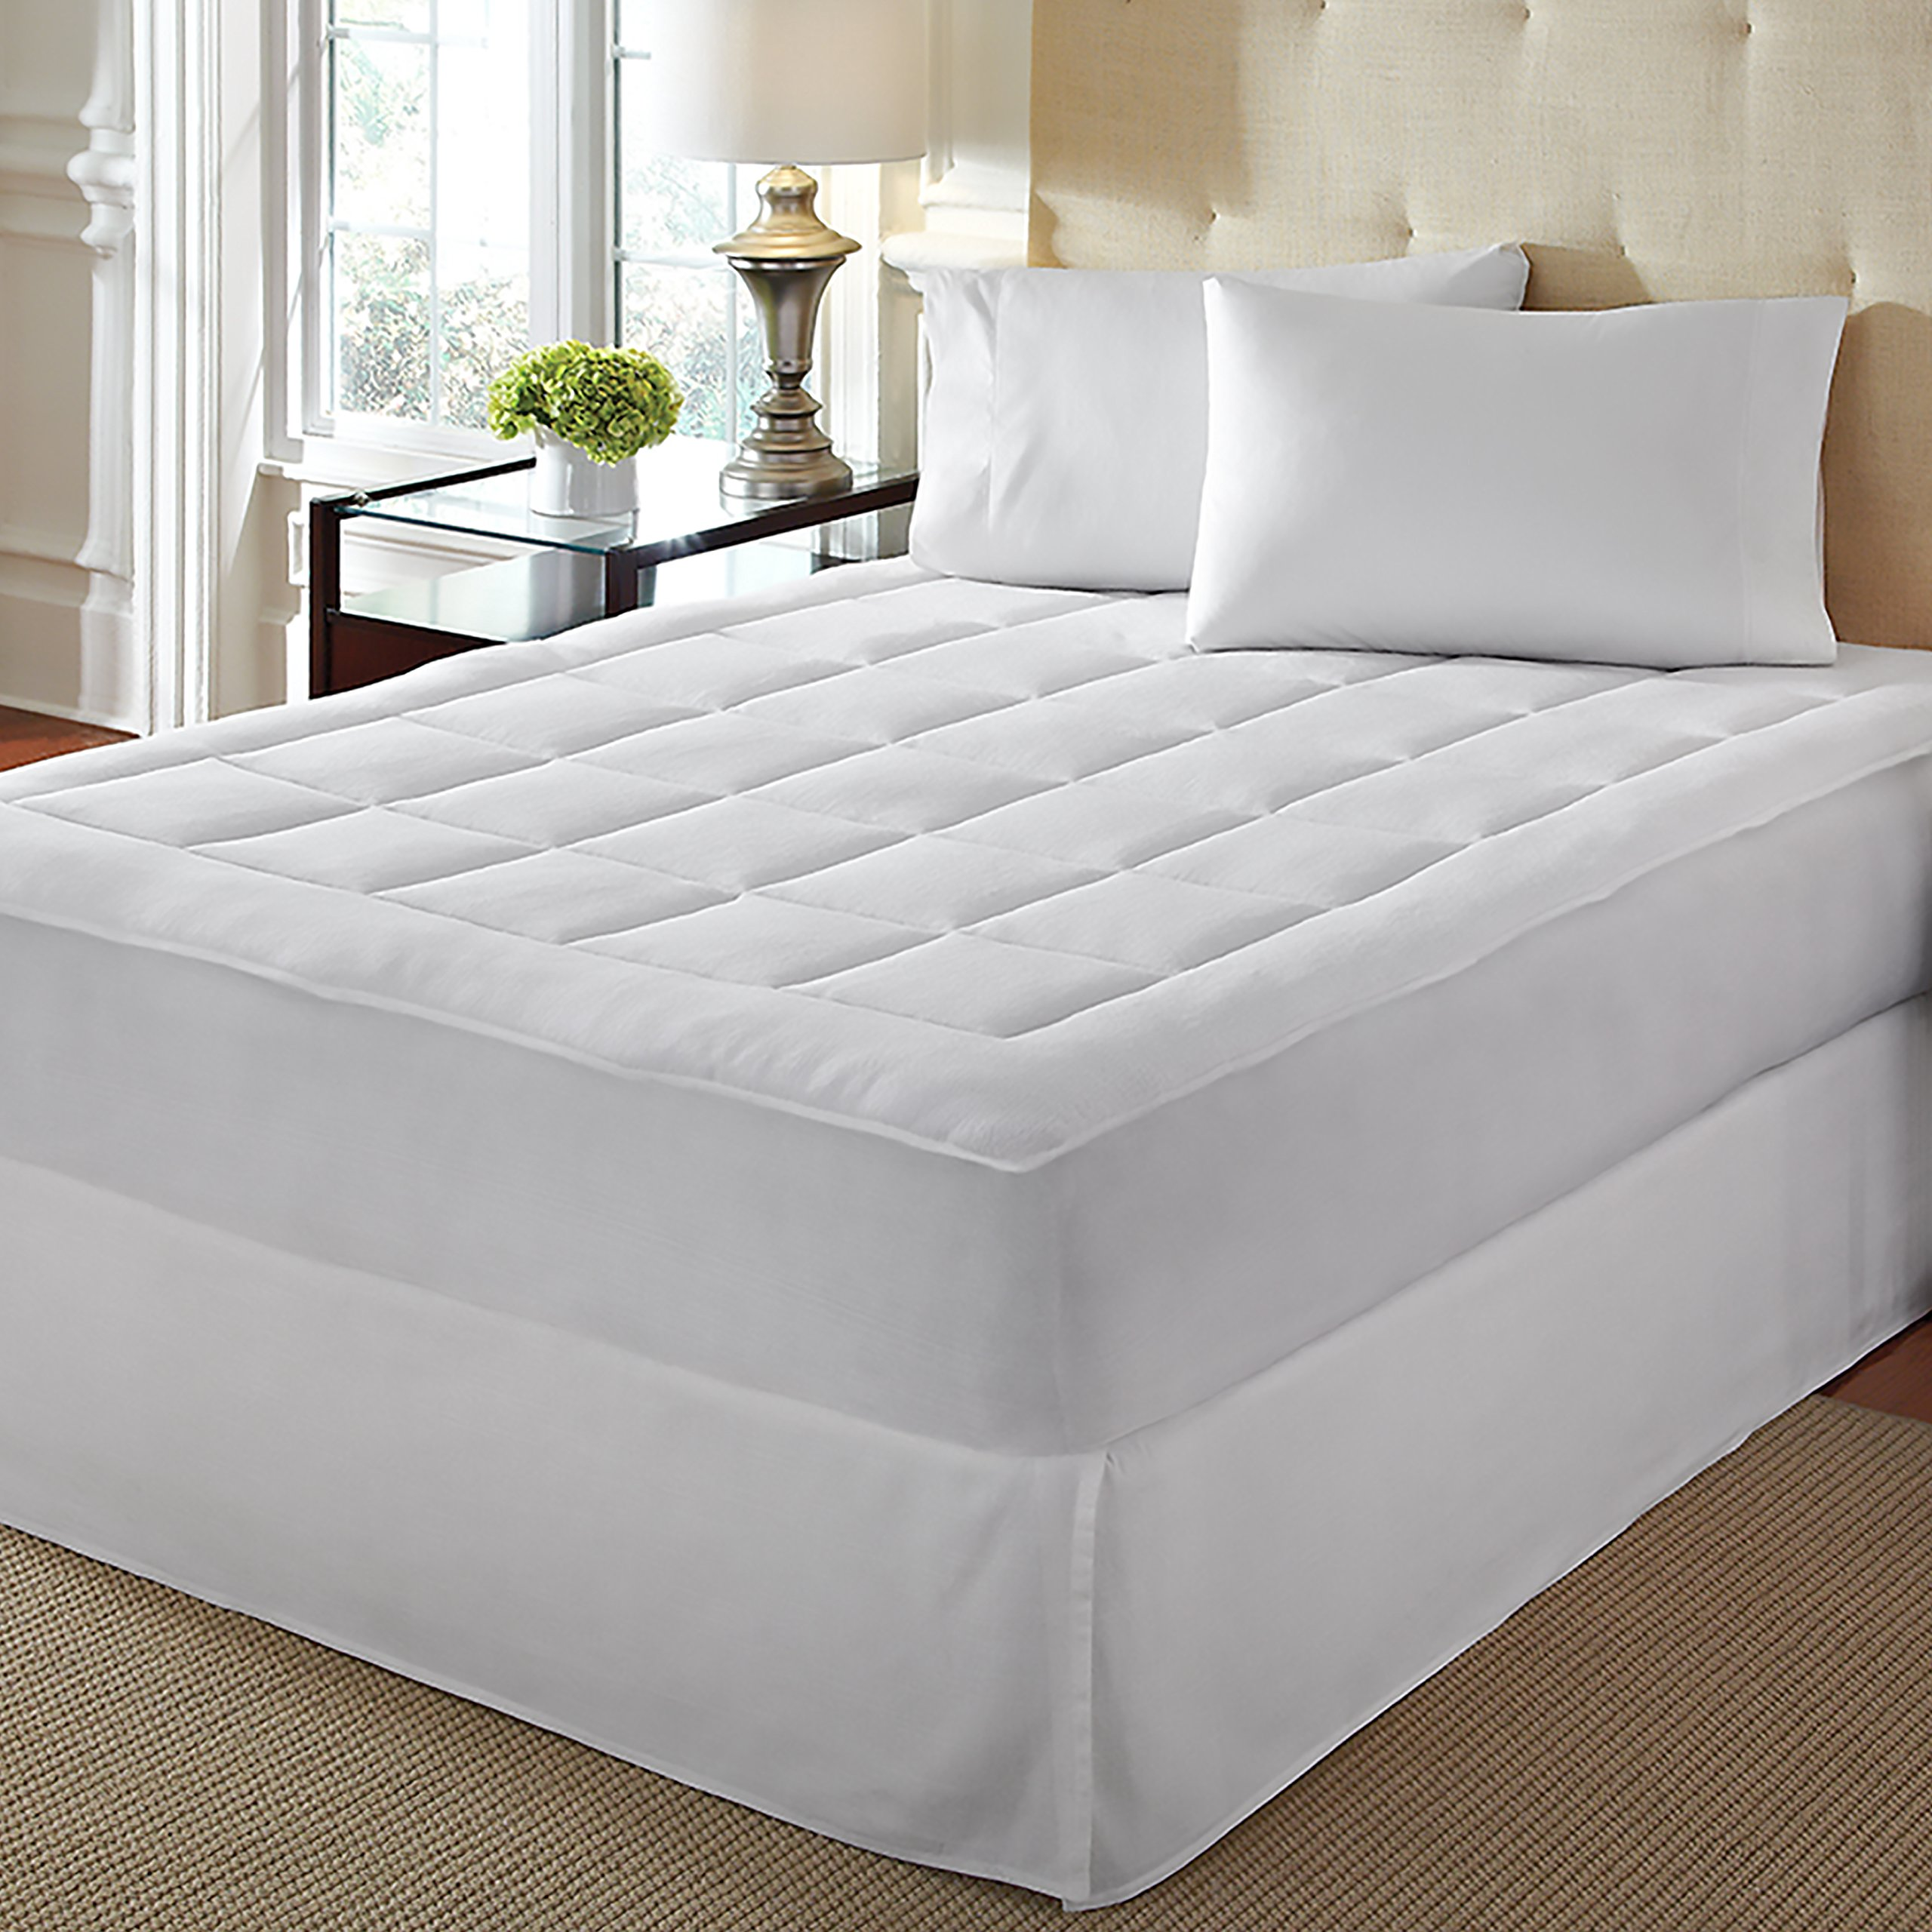 LoftWorks Rio Home Fashions Microplush Overfilled California King Mattress Pad, White